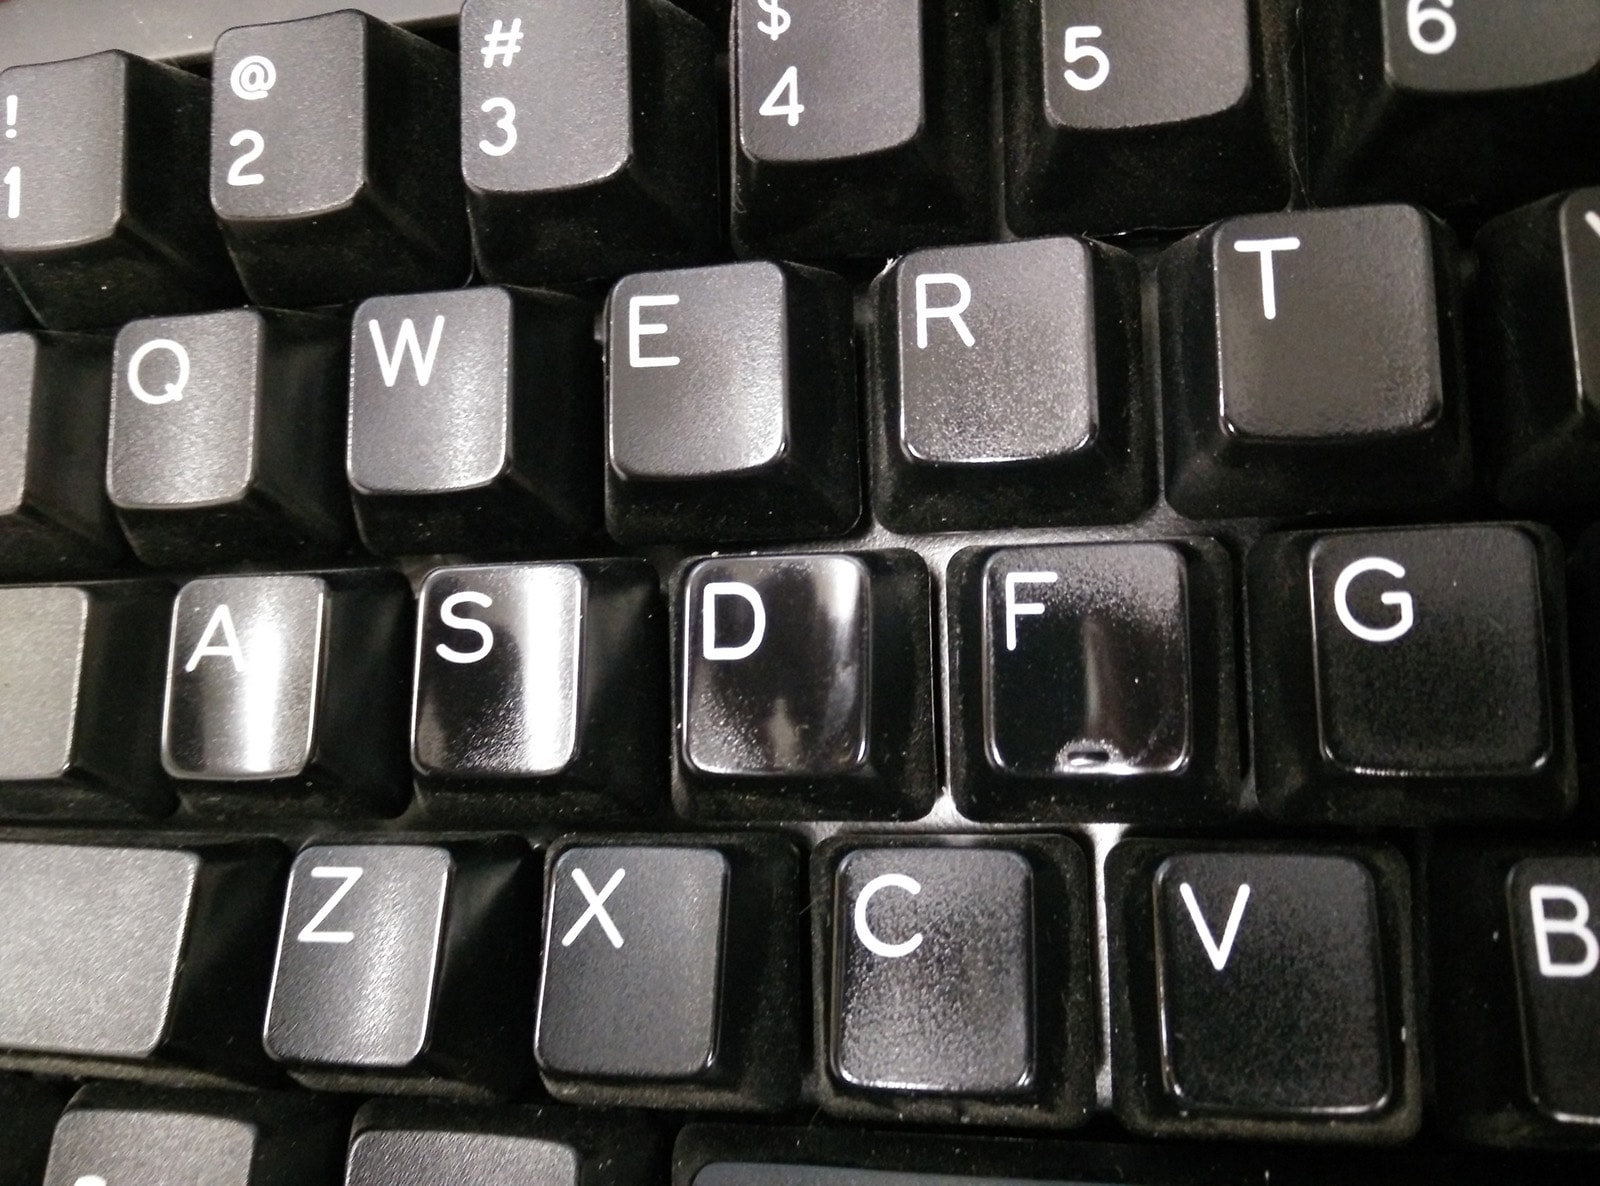 worn out keycaps